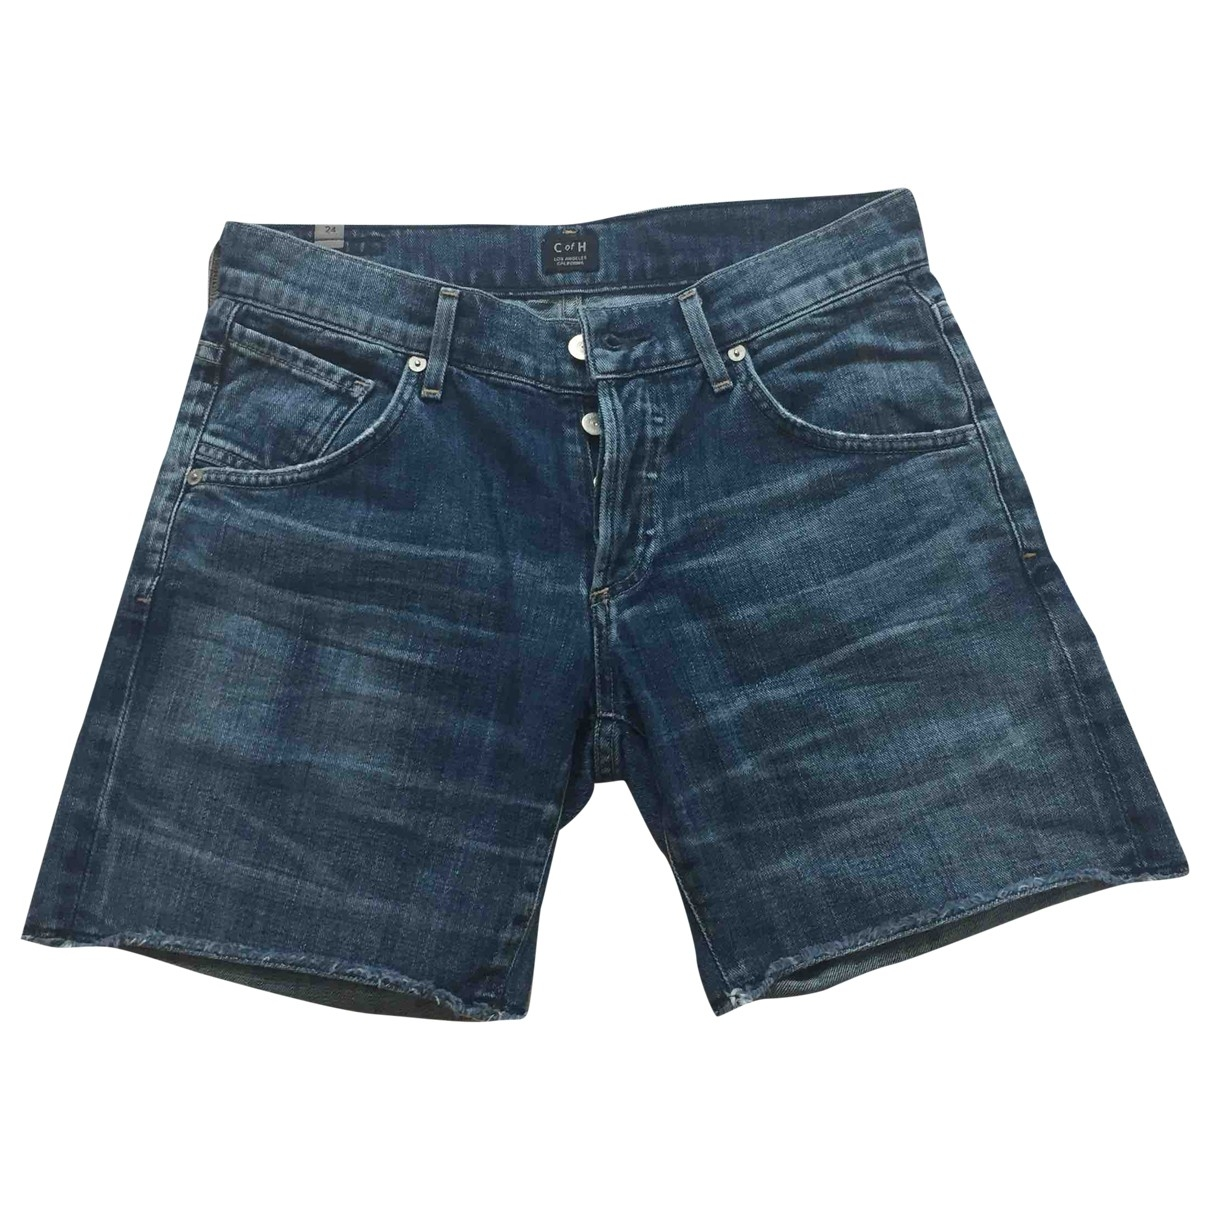 Citizens Of Humanity \N Blue Denim - Jeans Shorts for Women 34 FR